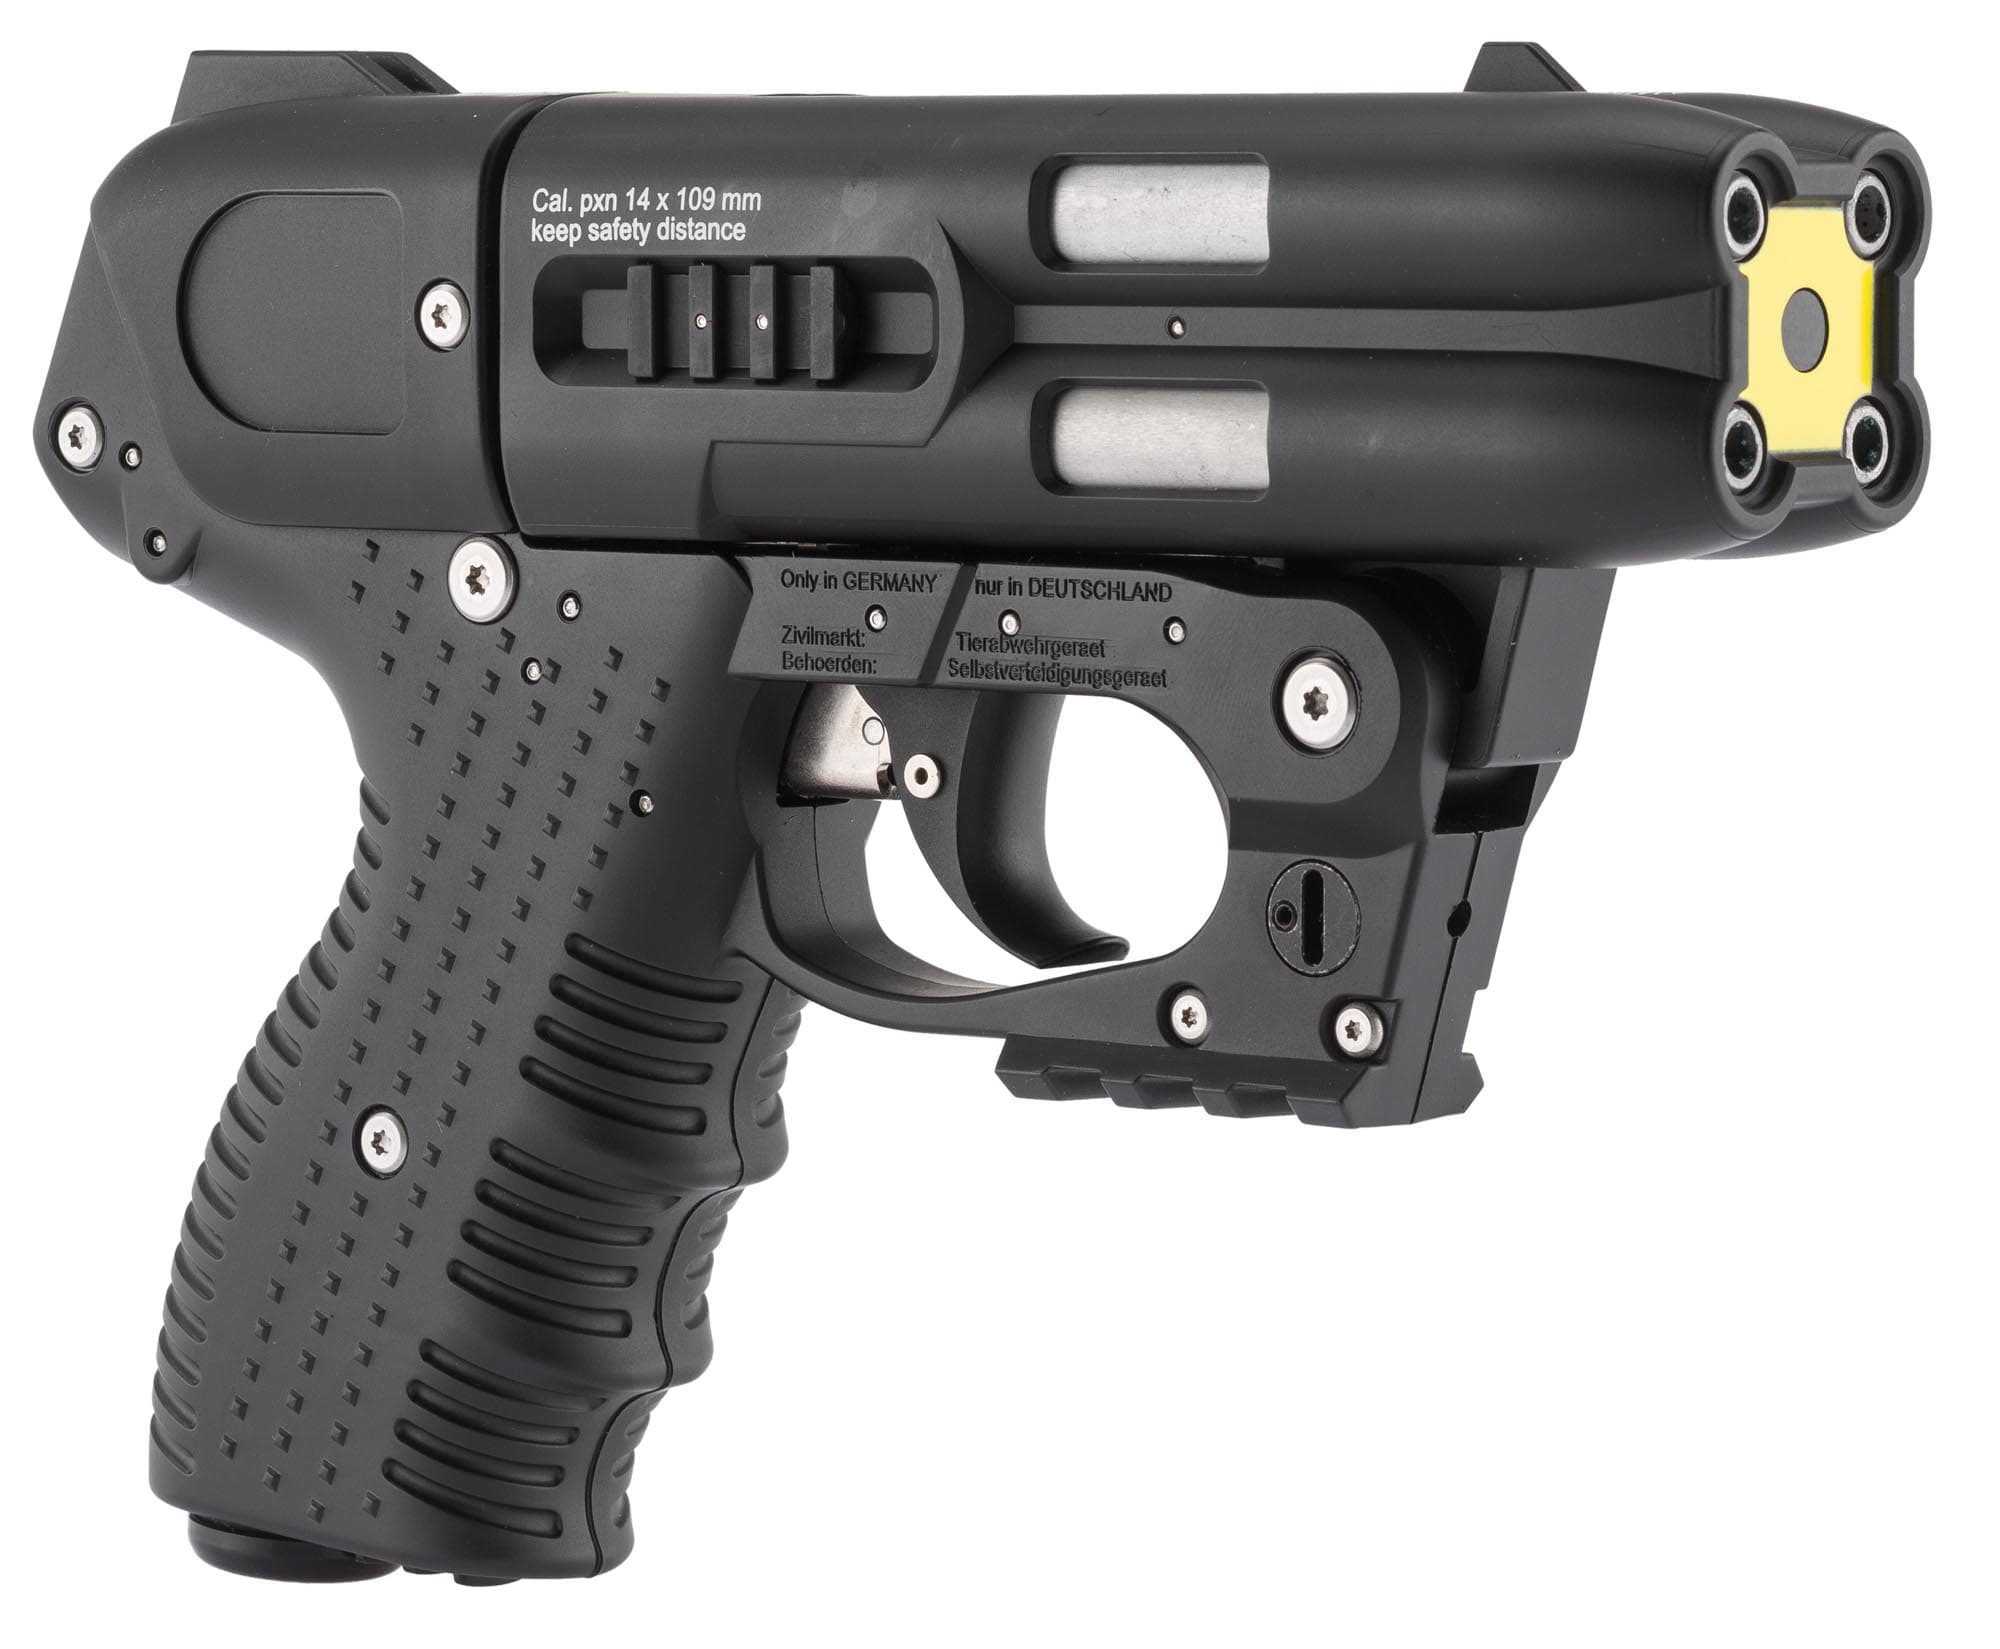 JPX151L-7-Jet JPX 4 Laser Noir Compact + 4 cartouches oc + Holster - JPX151L